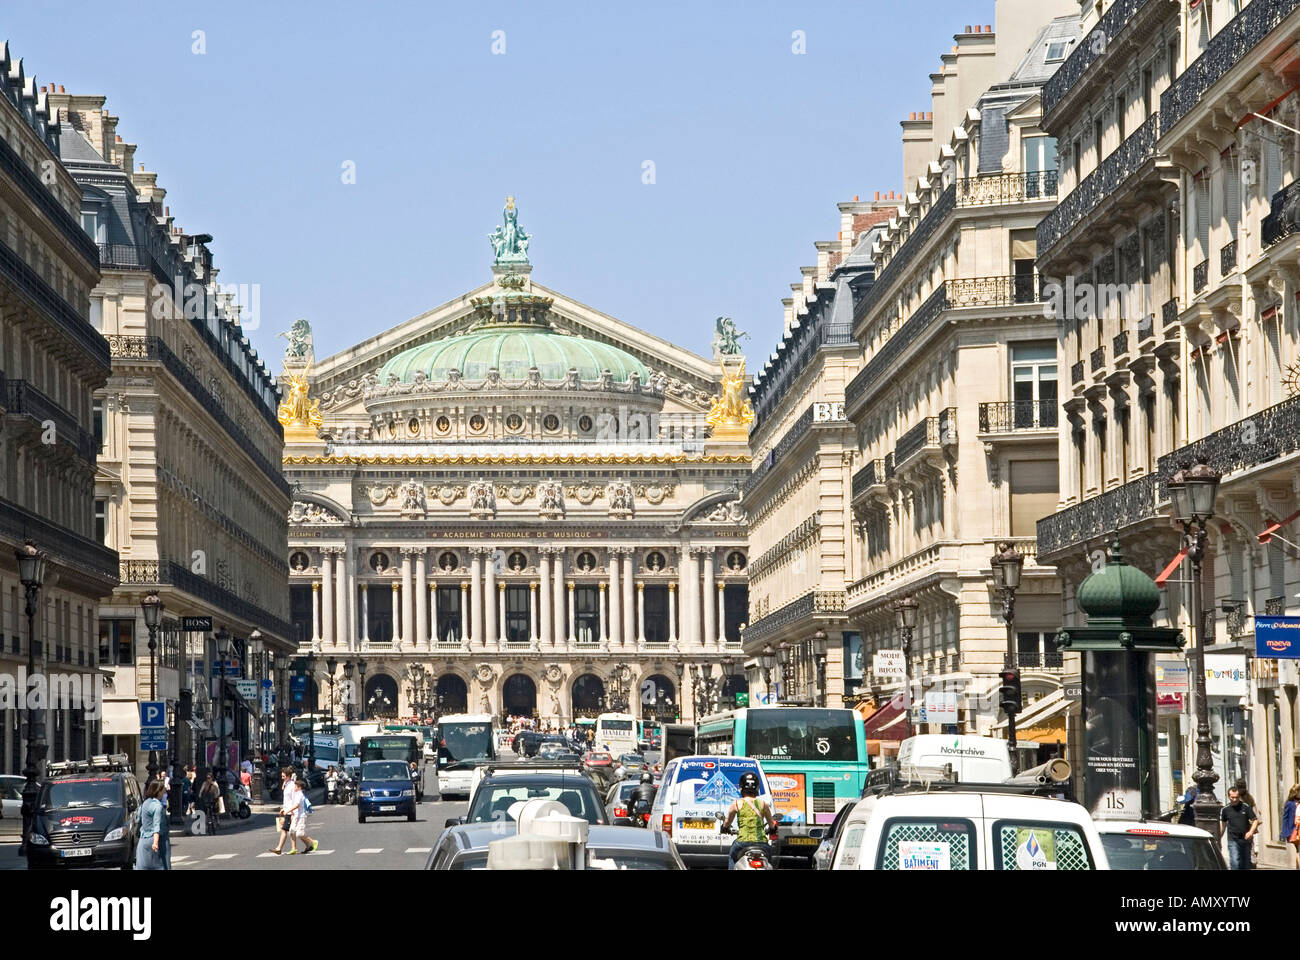 traffic on city road palais garnier paris france stock photo royalty free image 15356952 alamy. Black Bedroom Furniture Sets. Home Design Ideas